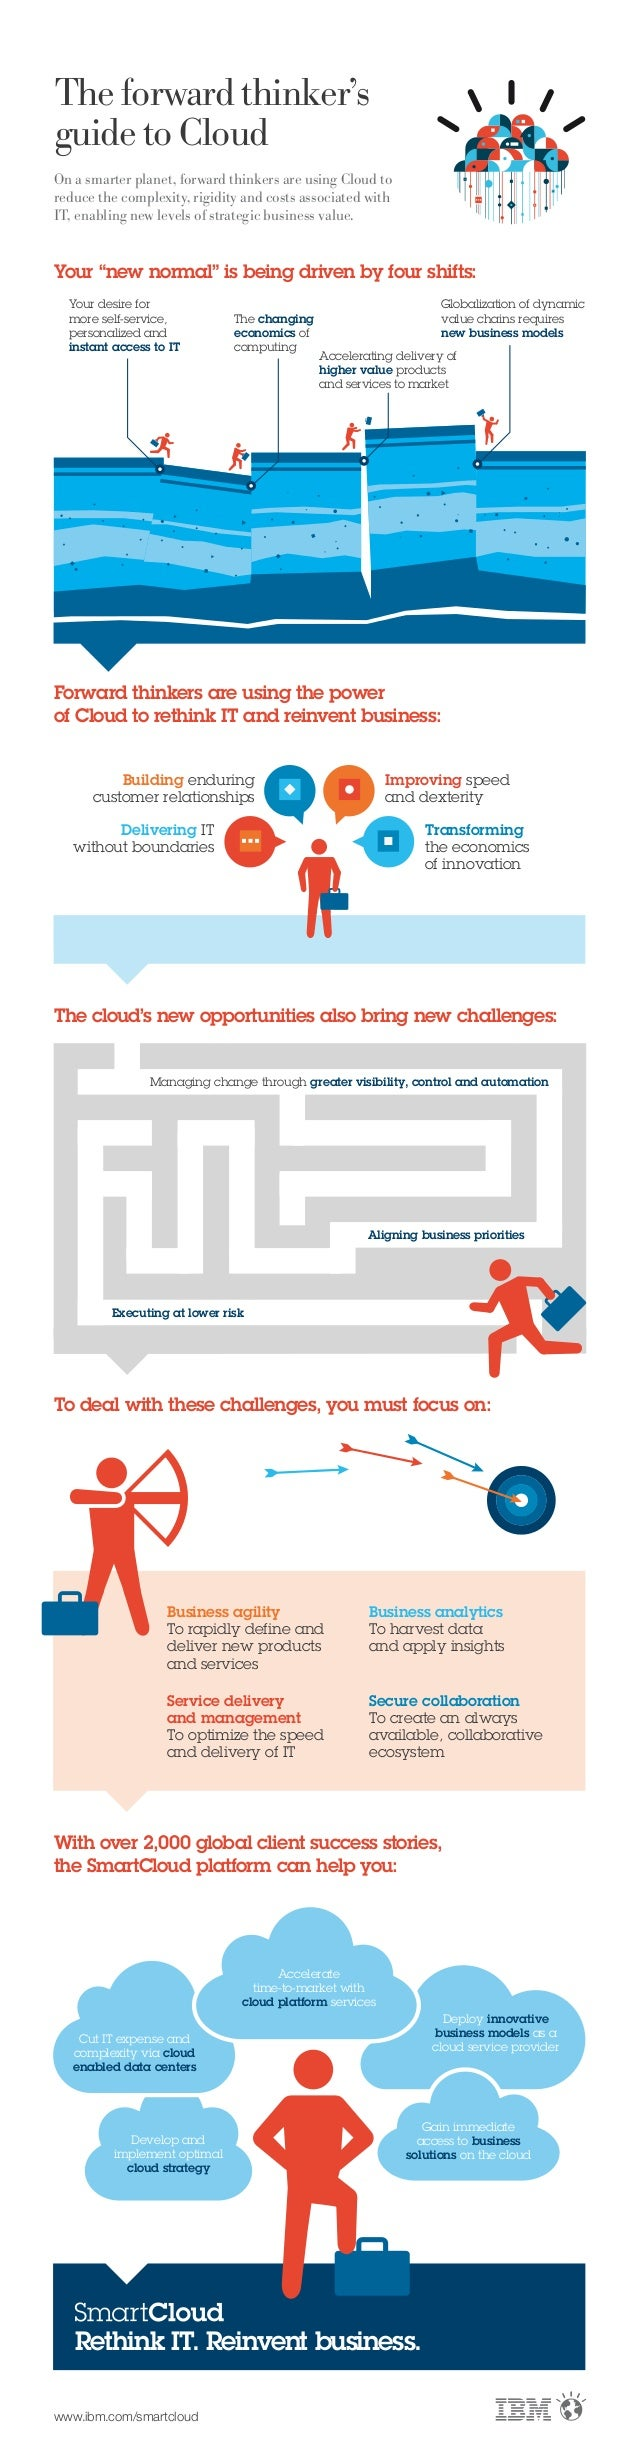 Cloud infographic-business-it-strategies-for-a-smarter-planet